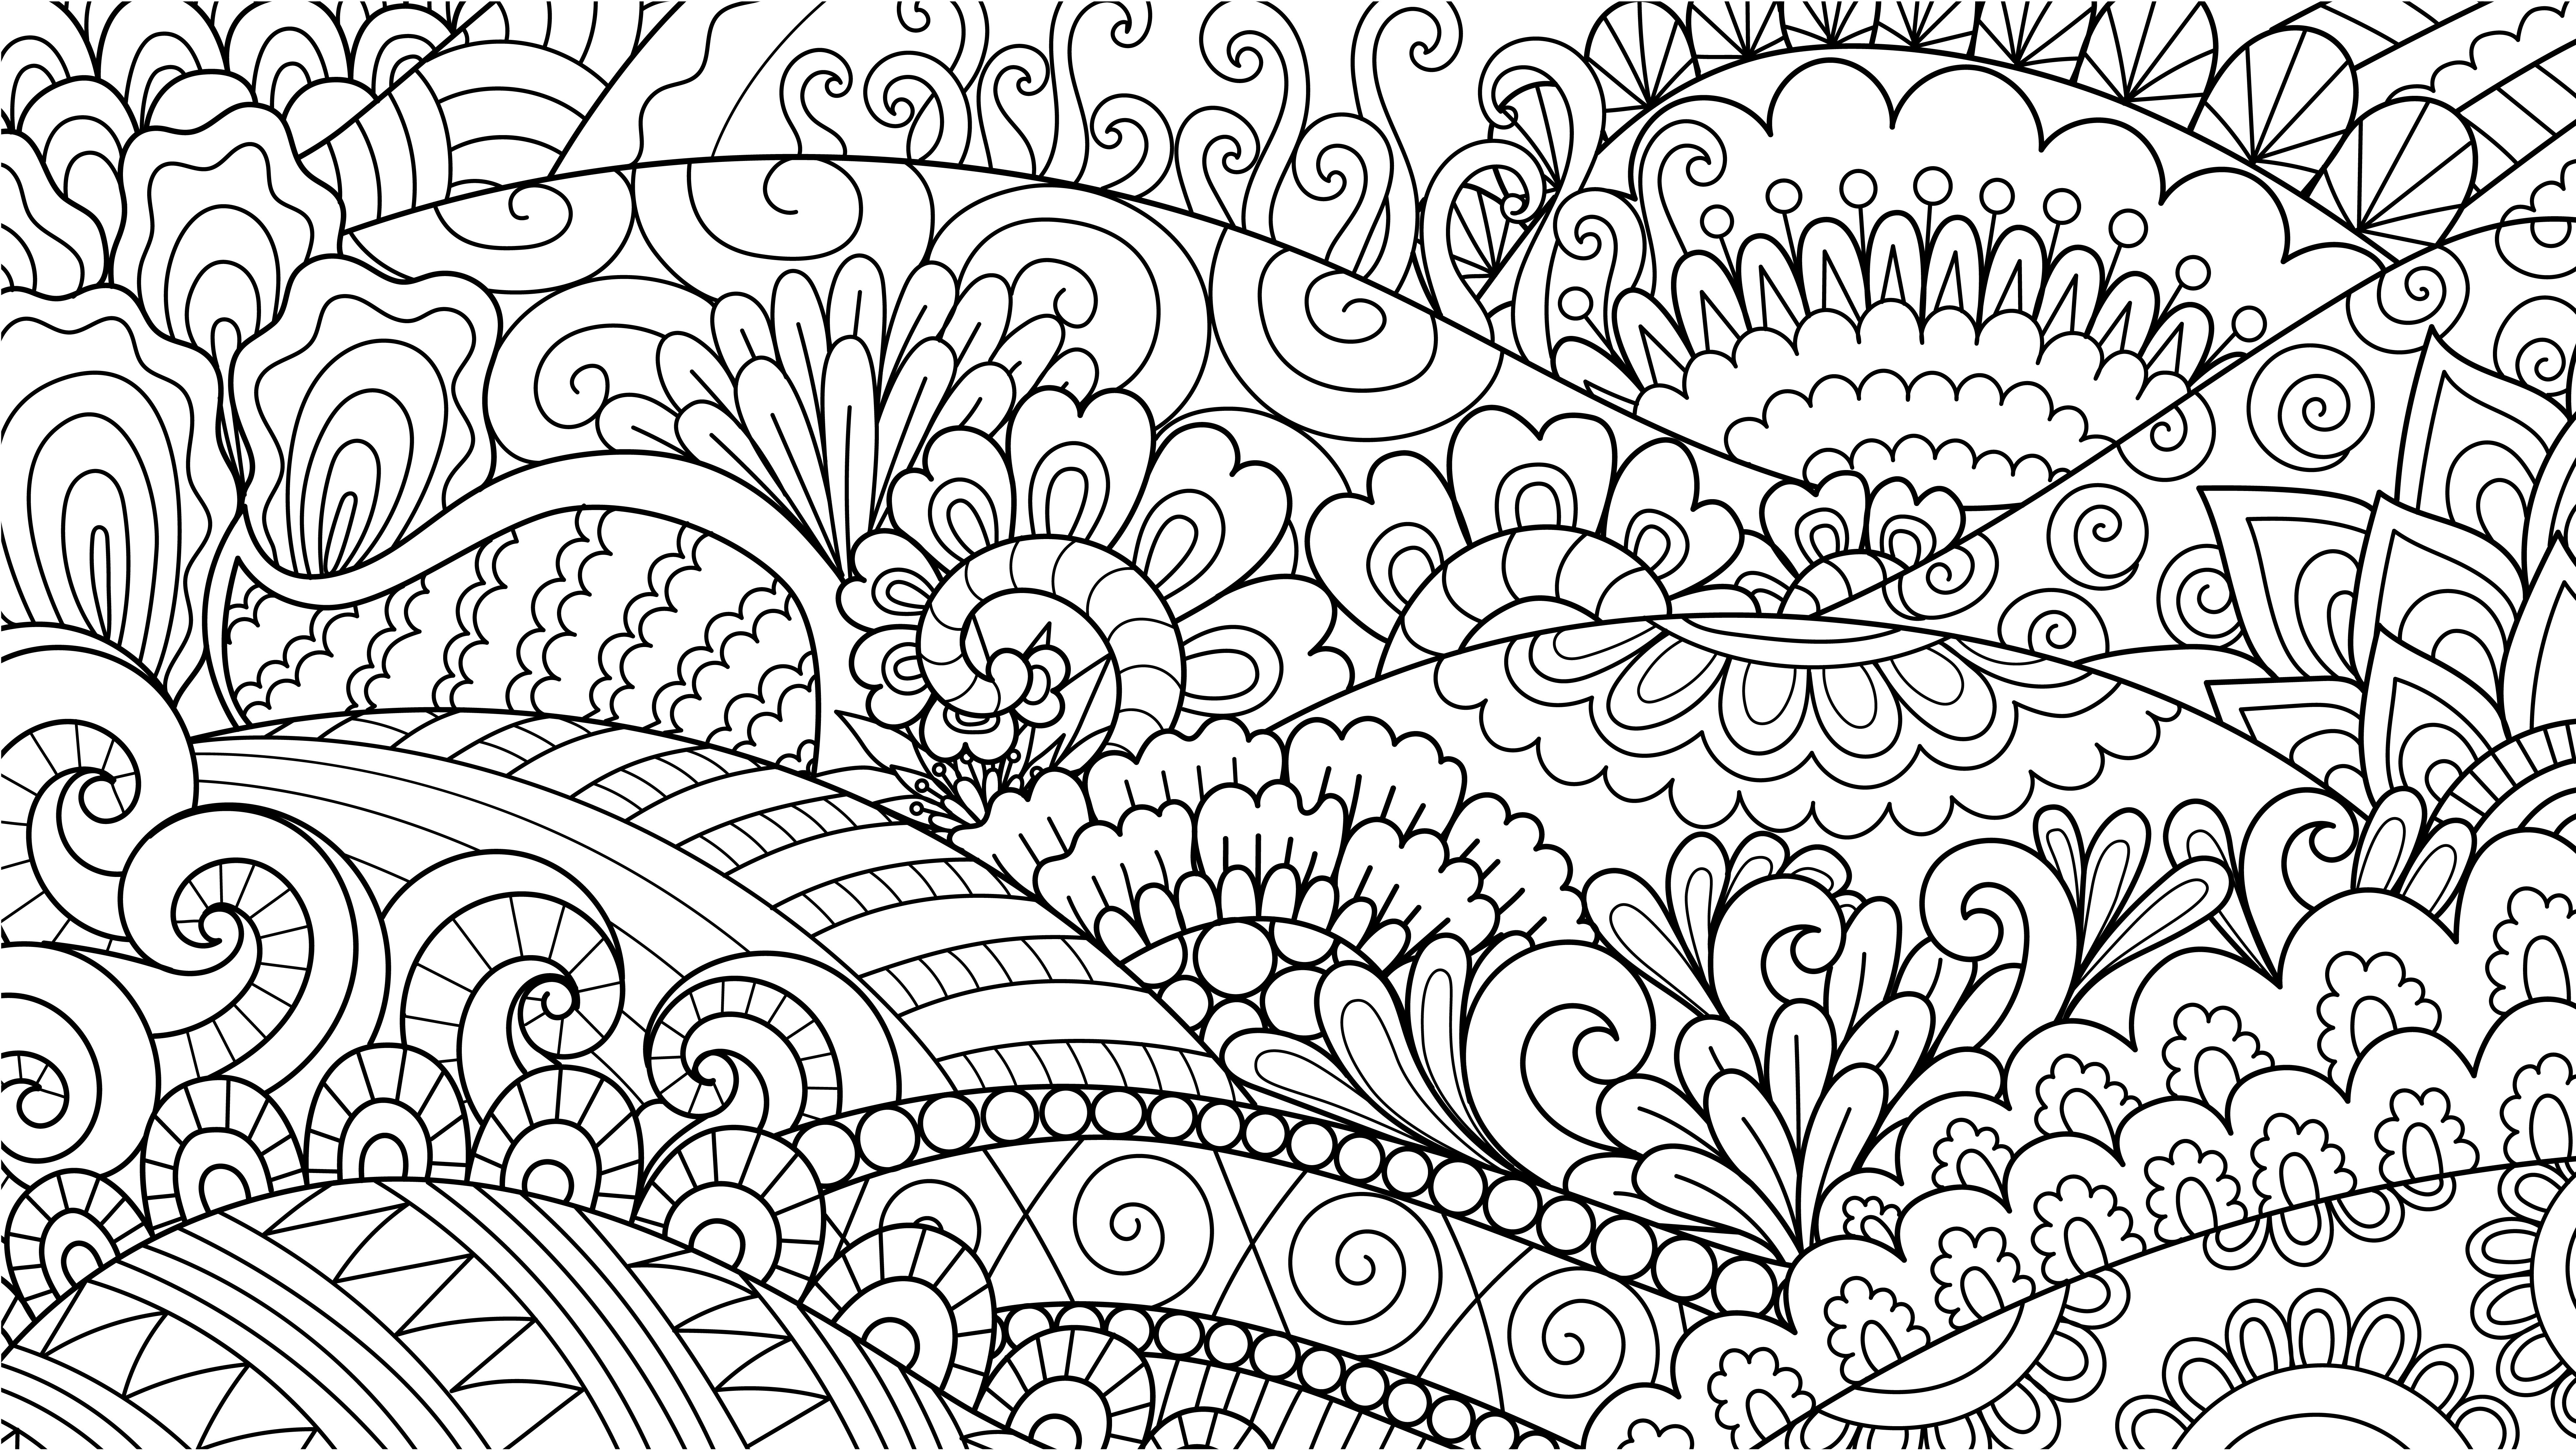 Mindfulness Coloring Pattern 1 How To Draw Hands Fall Coloring Pages Line Art